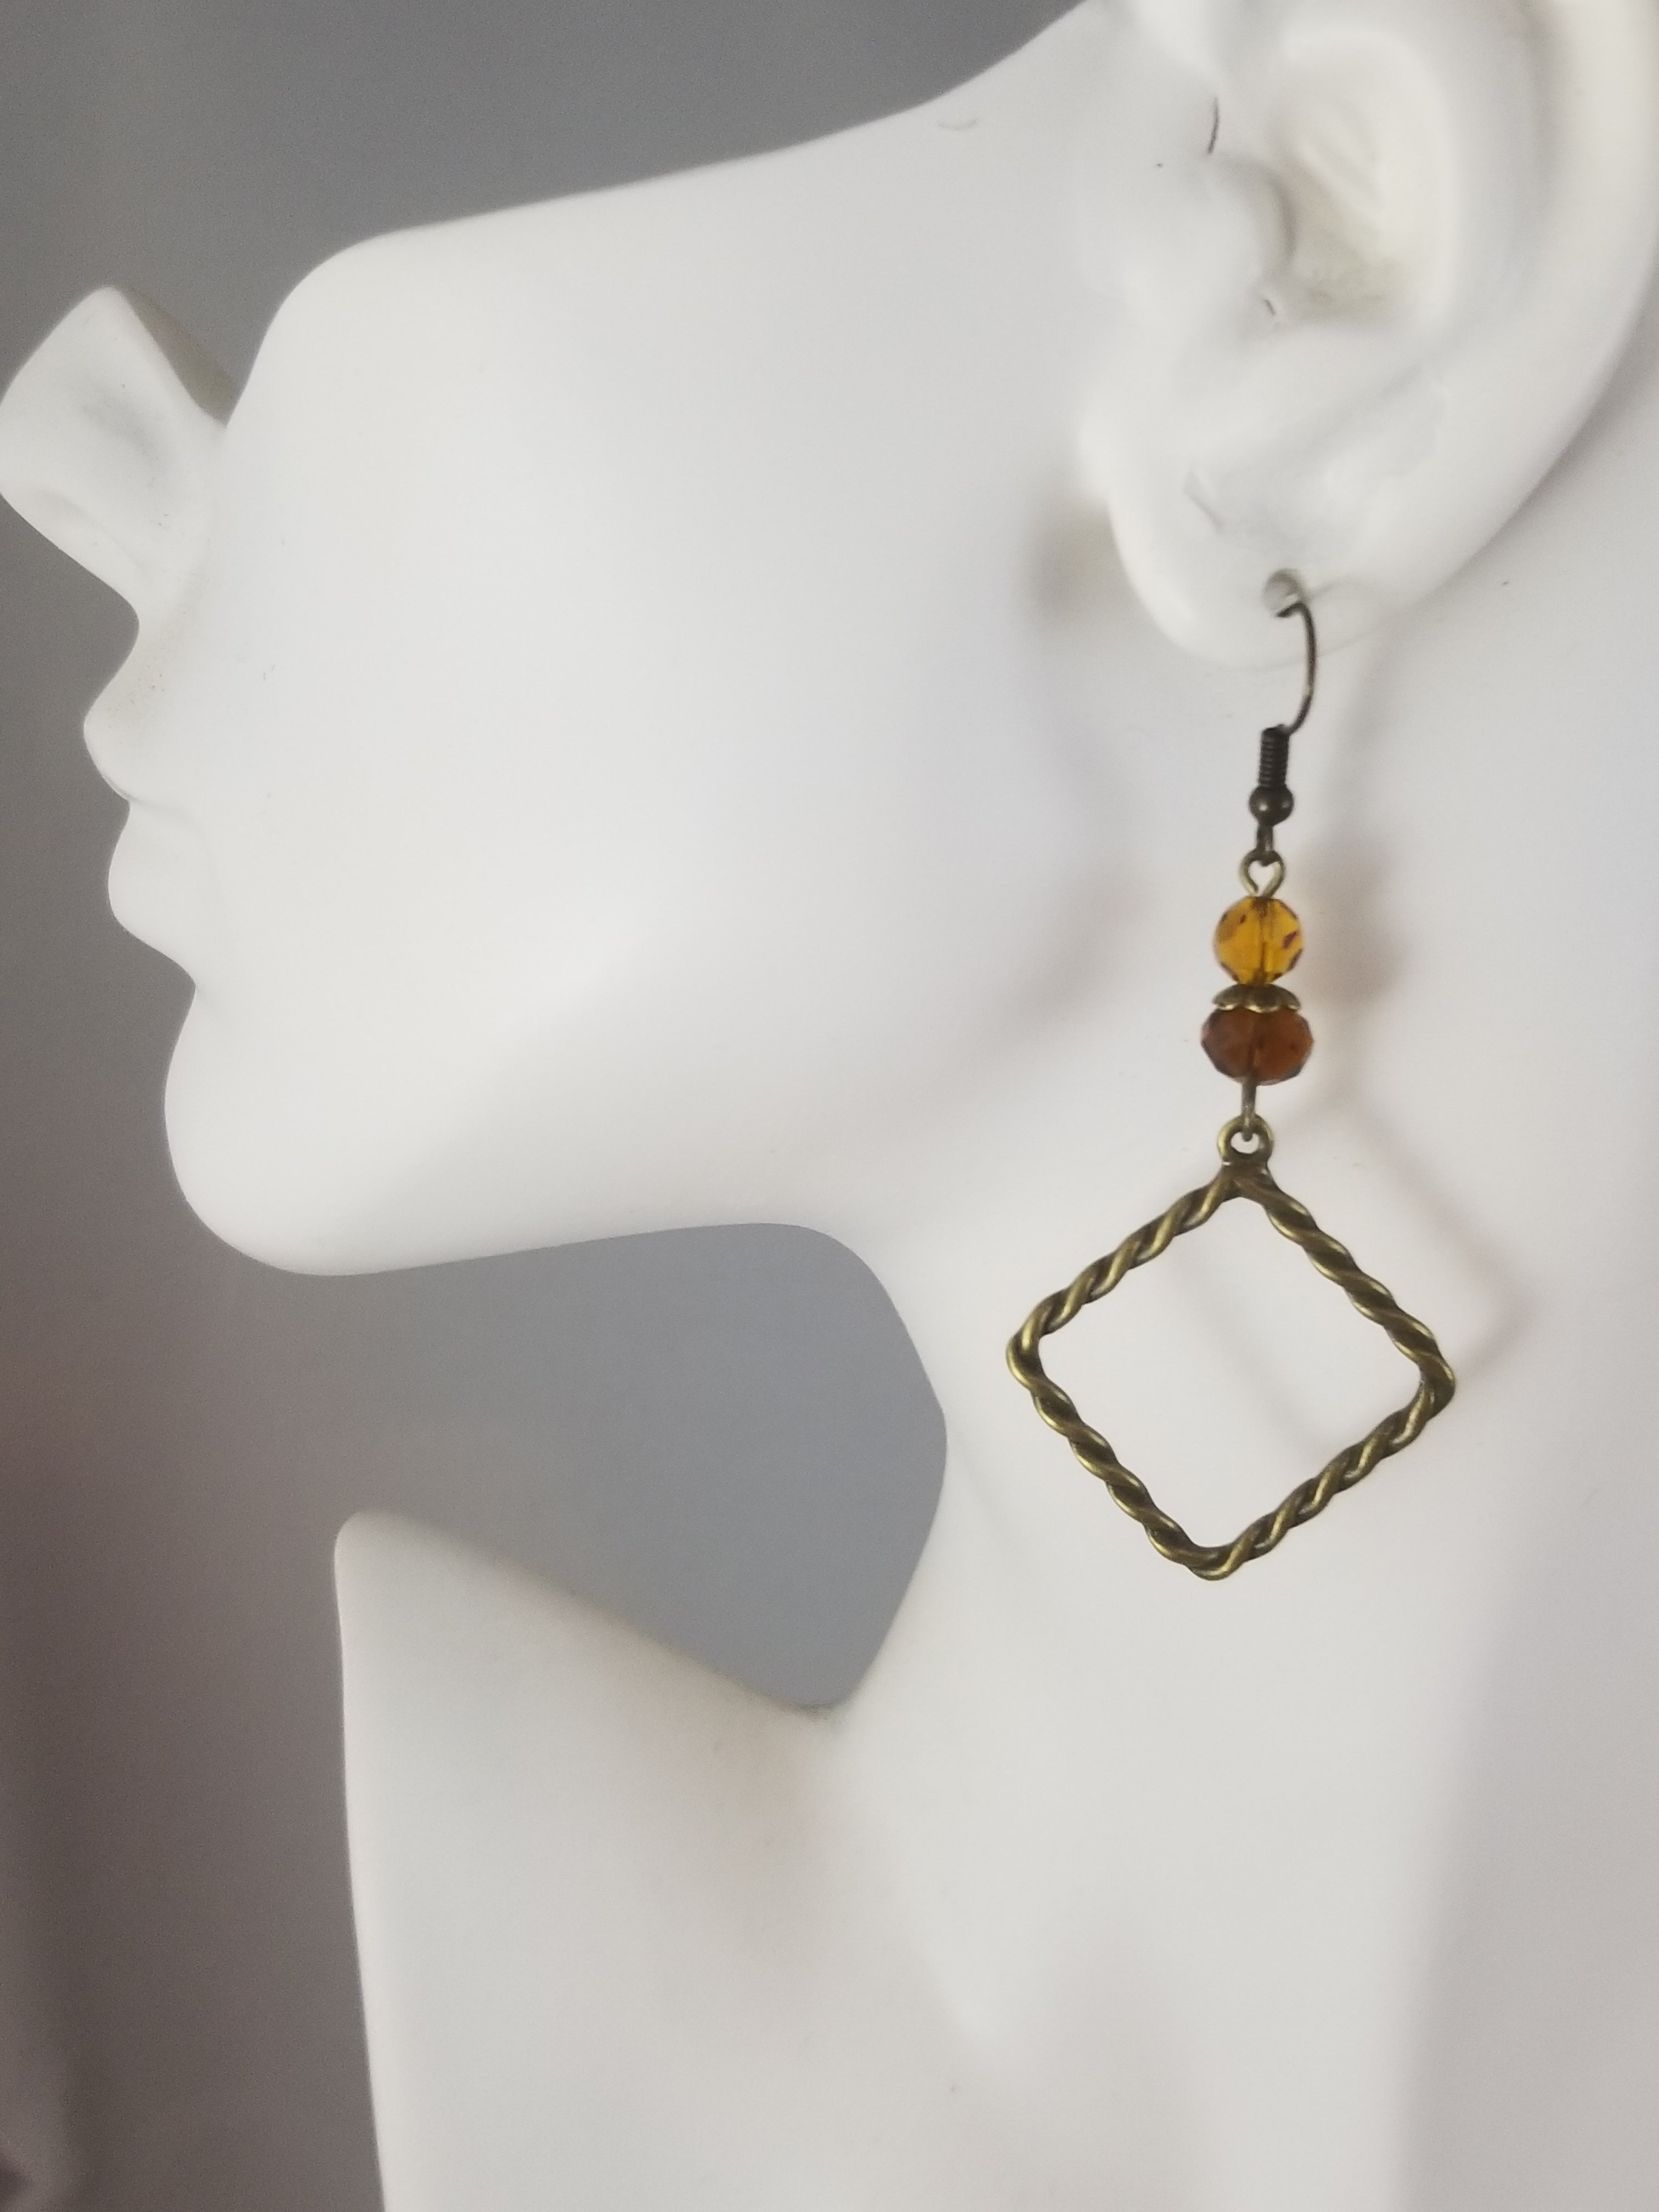 Antique Golden #9 Earrings